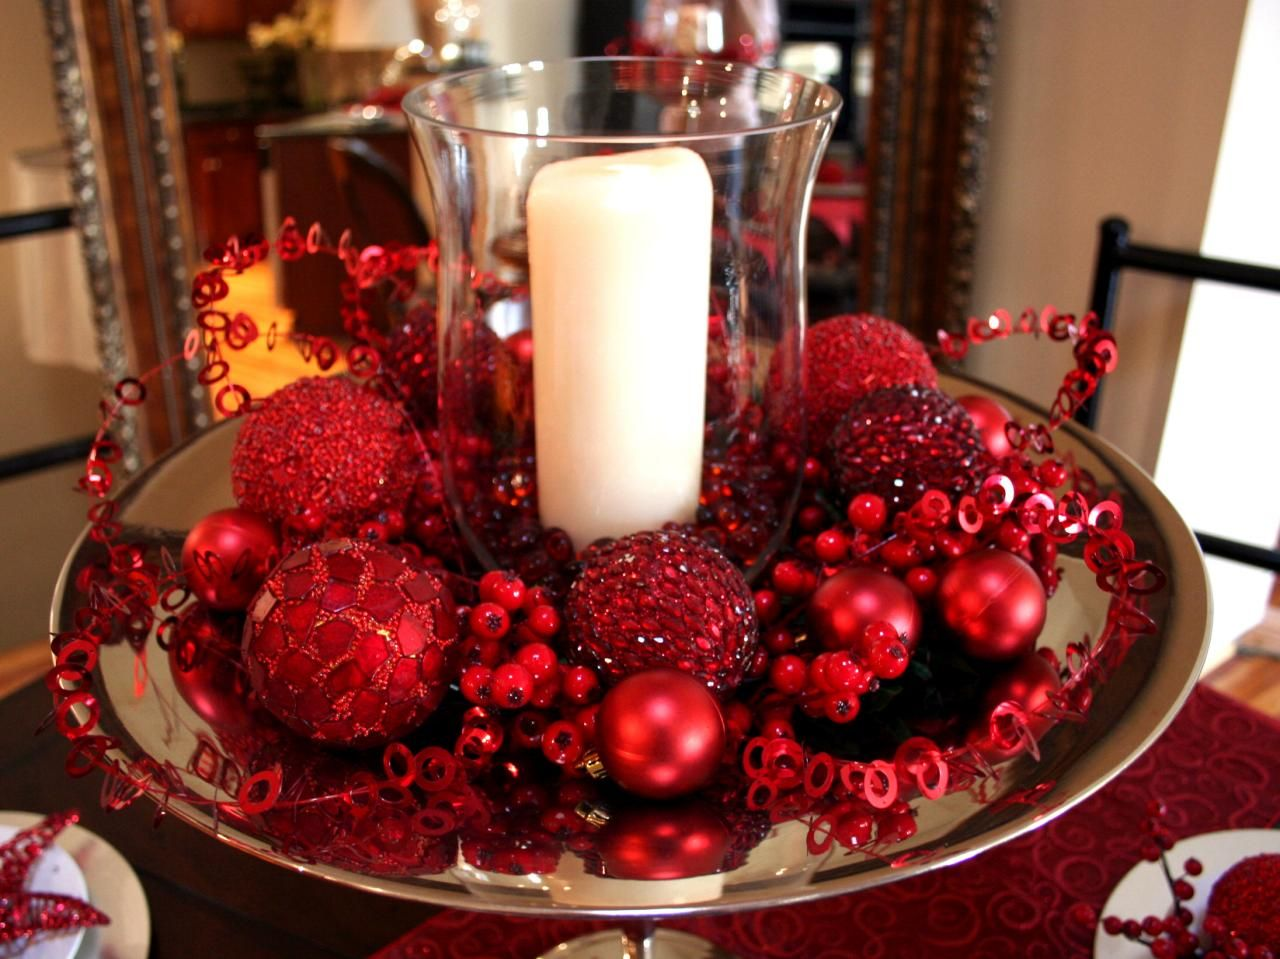 Christmas Table Settings 28 Christmas Table Decorations & Settings  Tinsel Garland Red